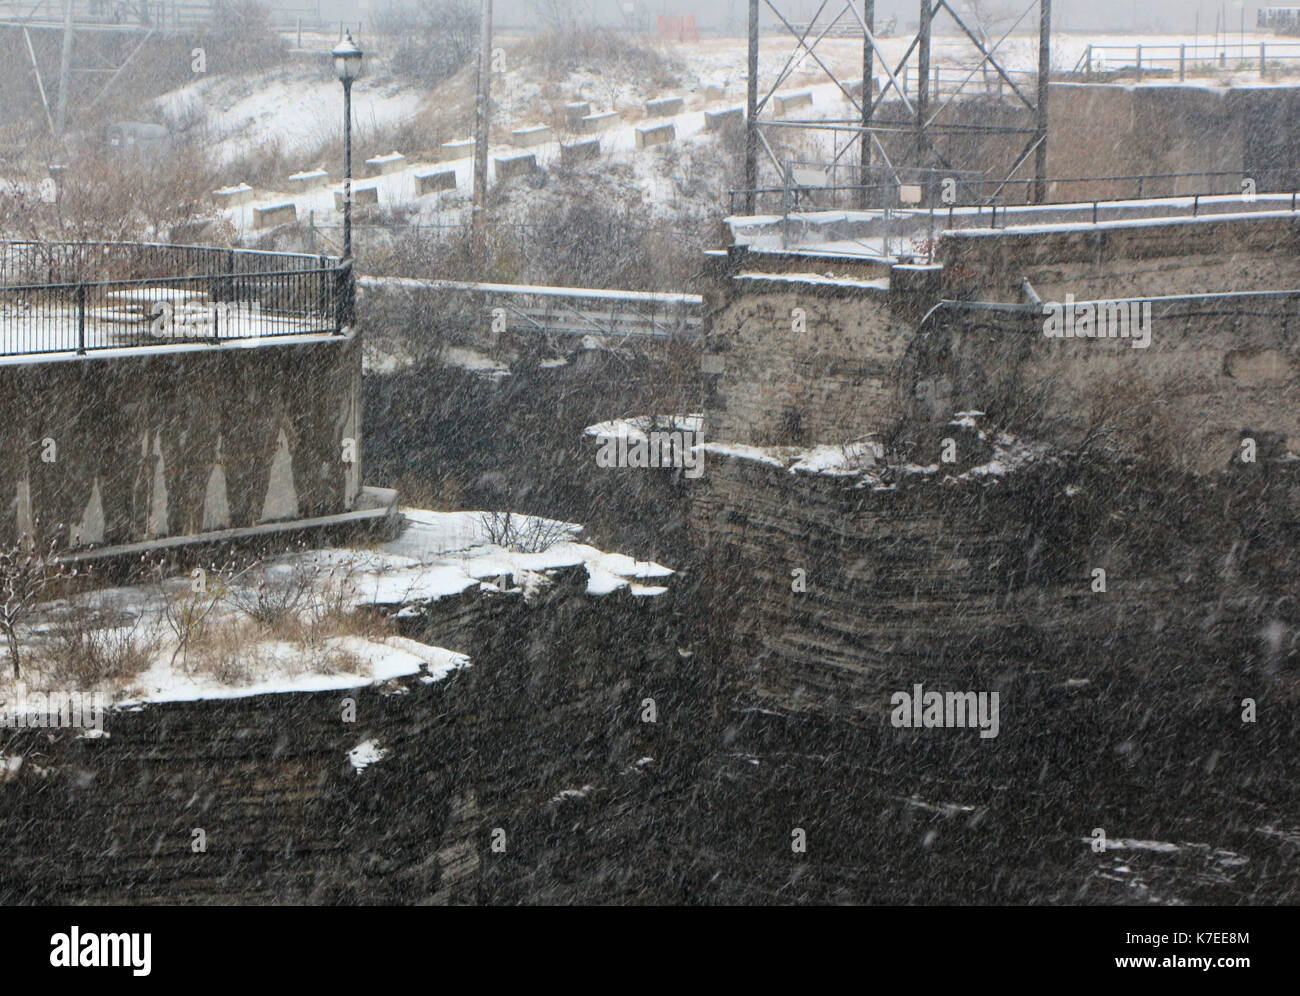 Rock-cut channels at hydro facility on a dark winter day in Ottawa, Canada. - Stock Image